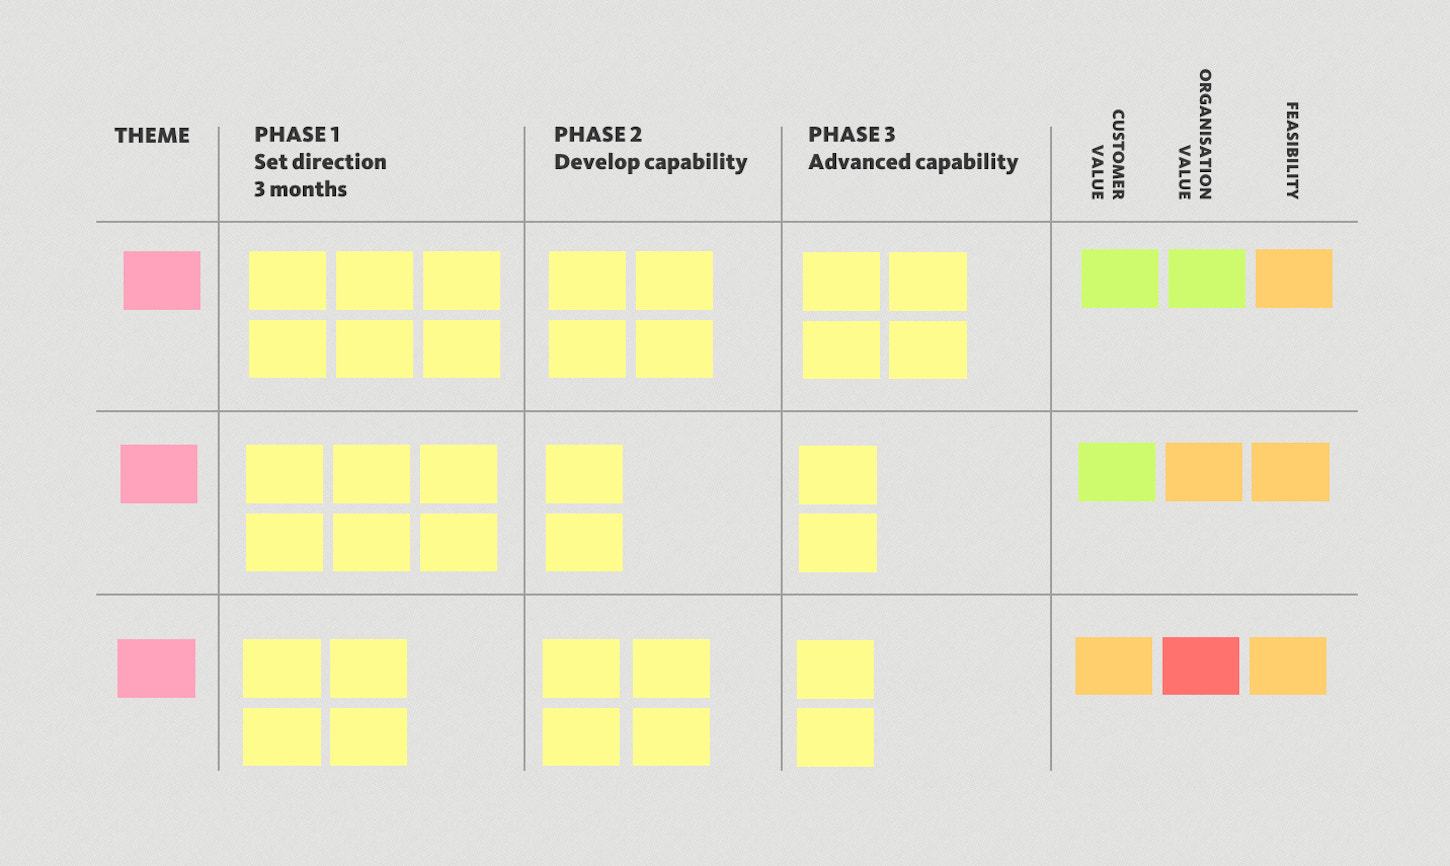 A product roadmap table divided into themes, and three phases based on feature priority and feasibility